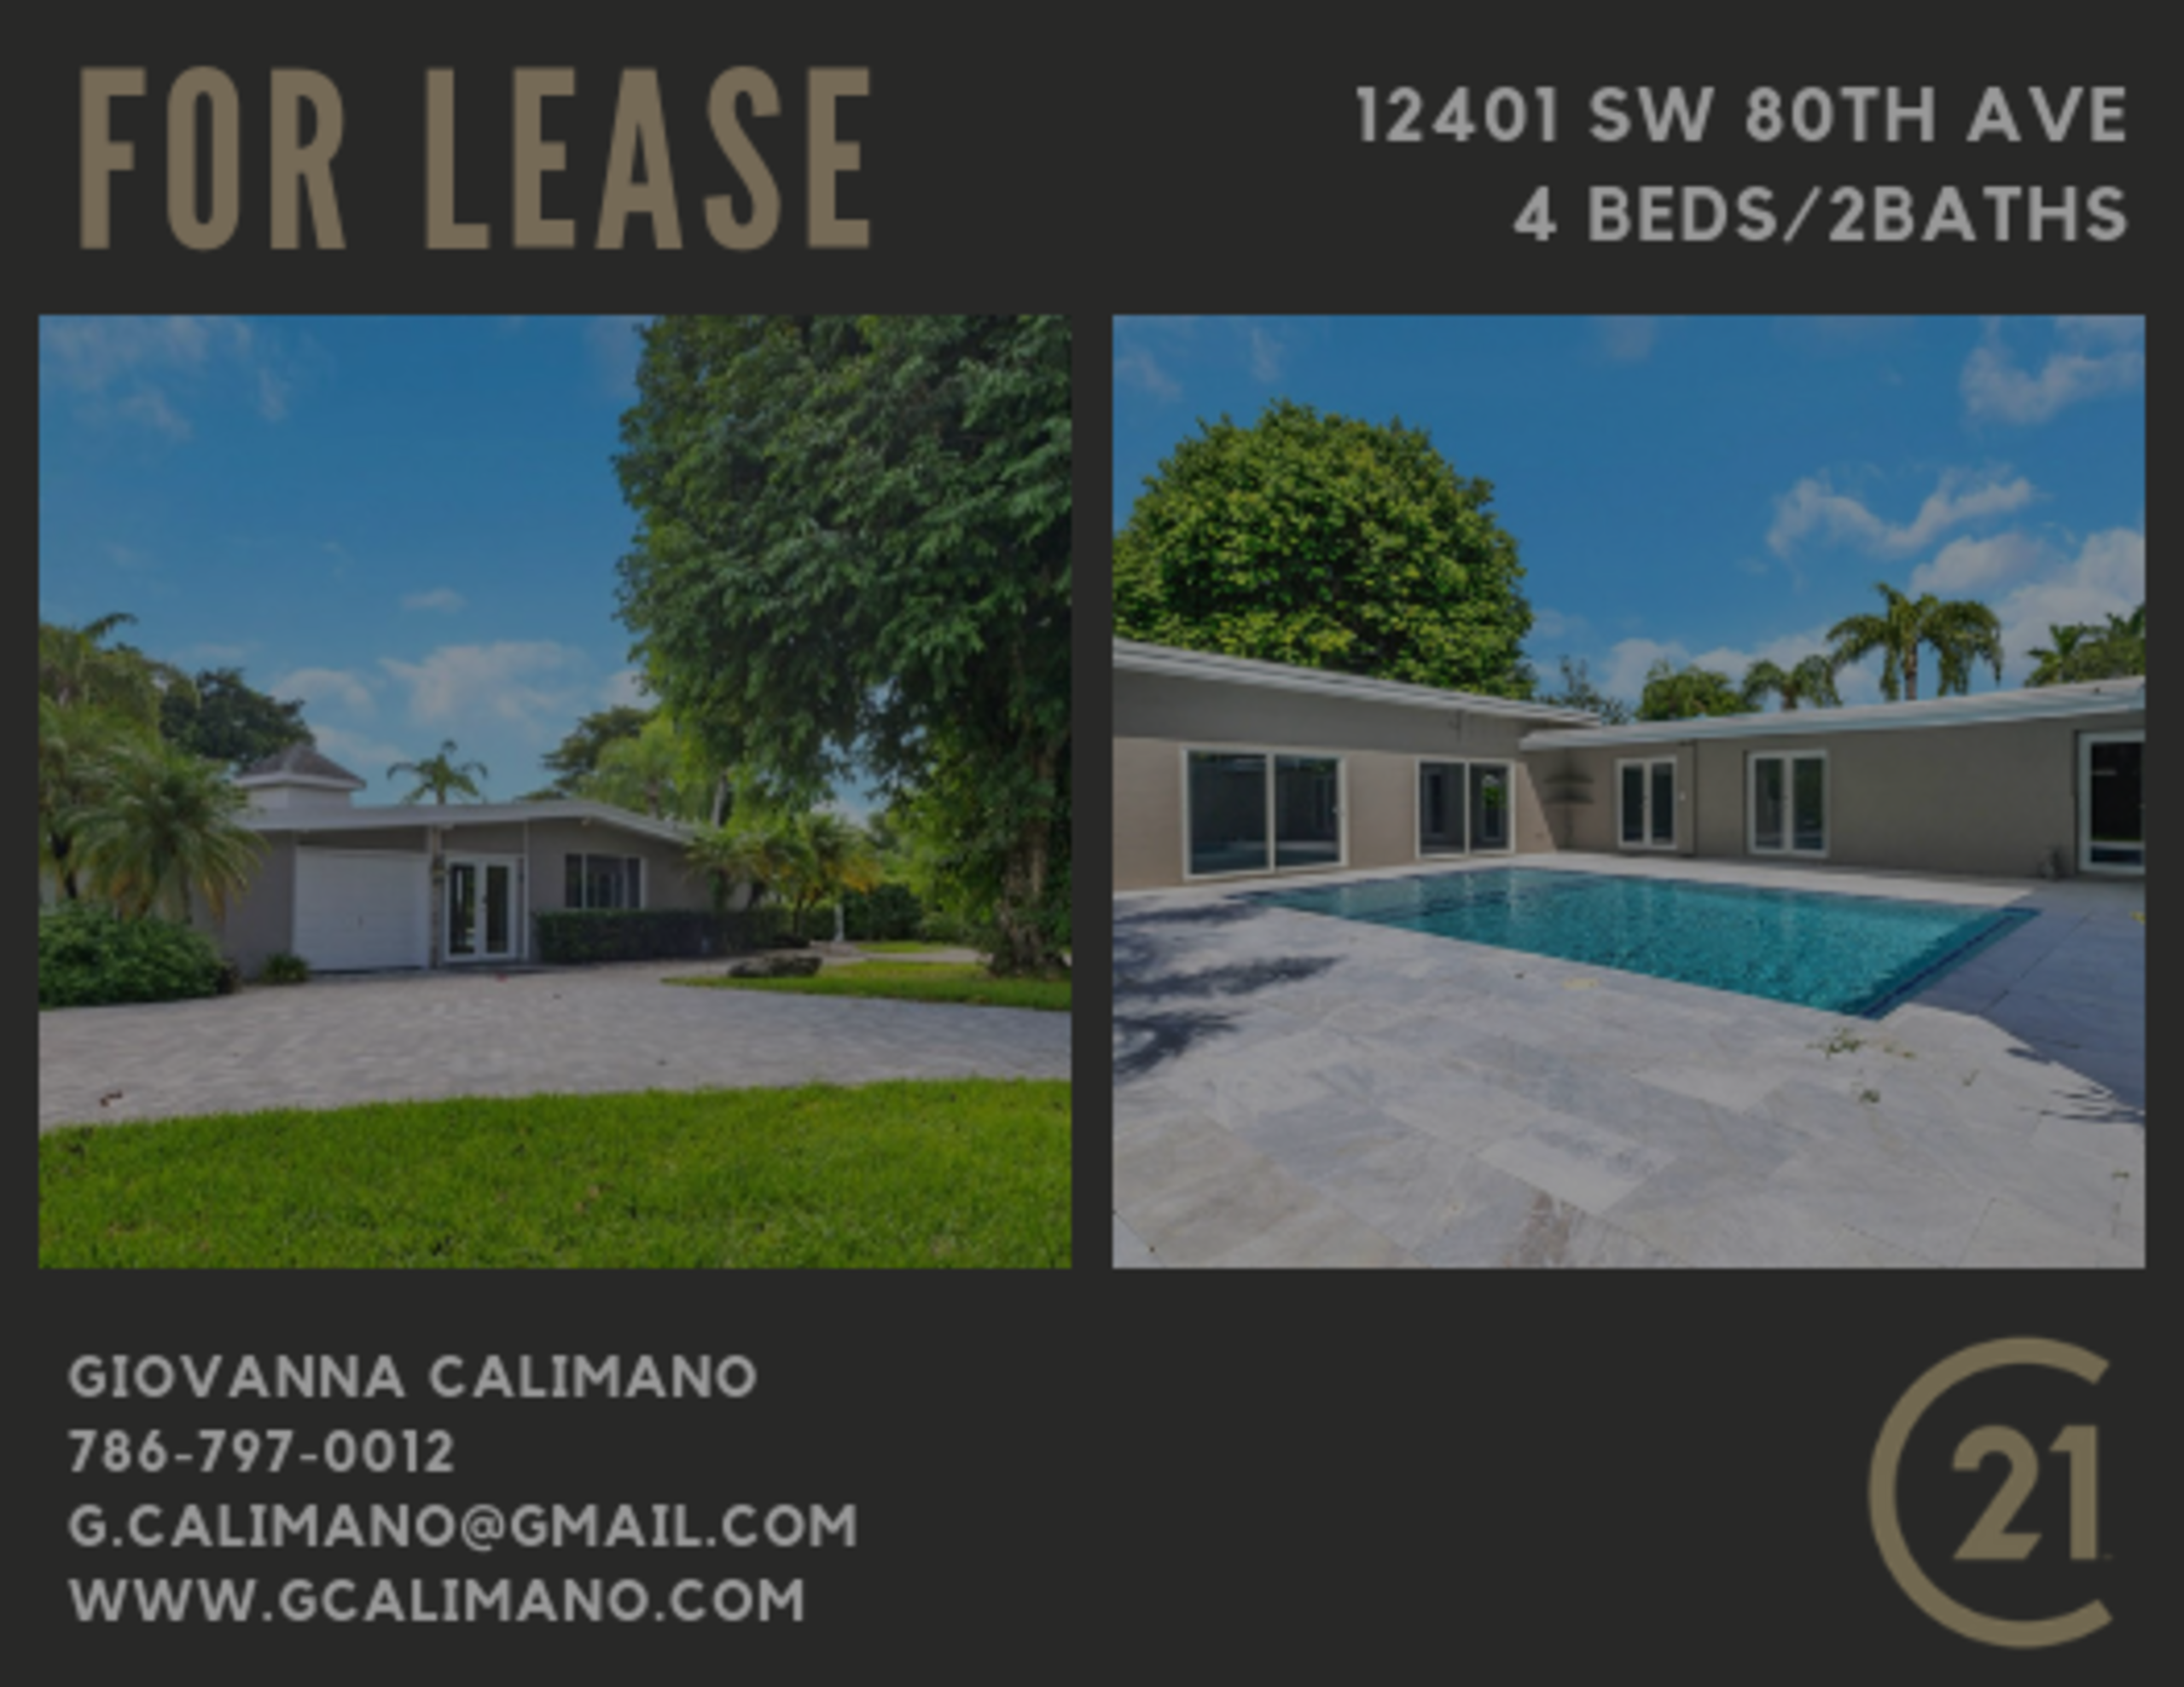 Beautiful Pinecrest Home for Lease! 4Bed/2Bath